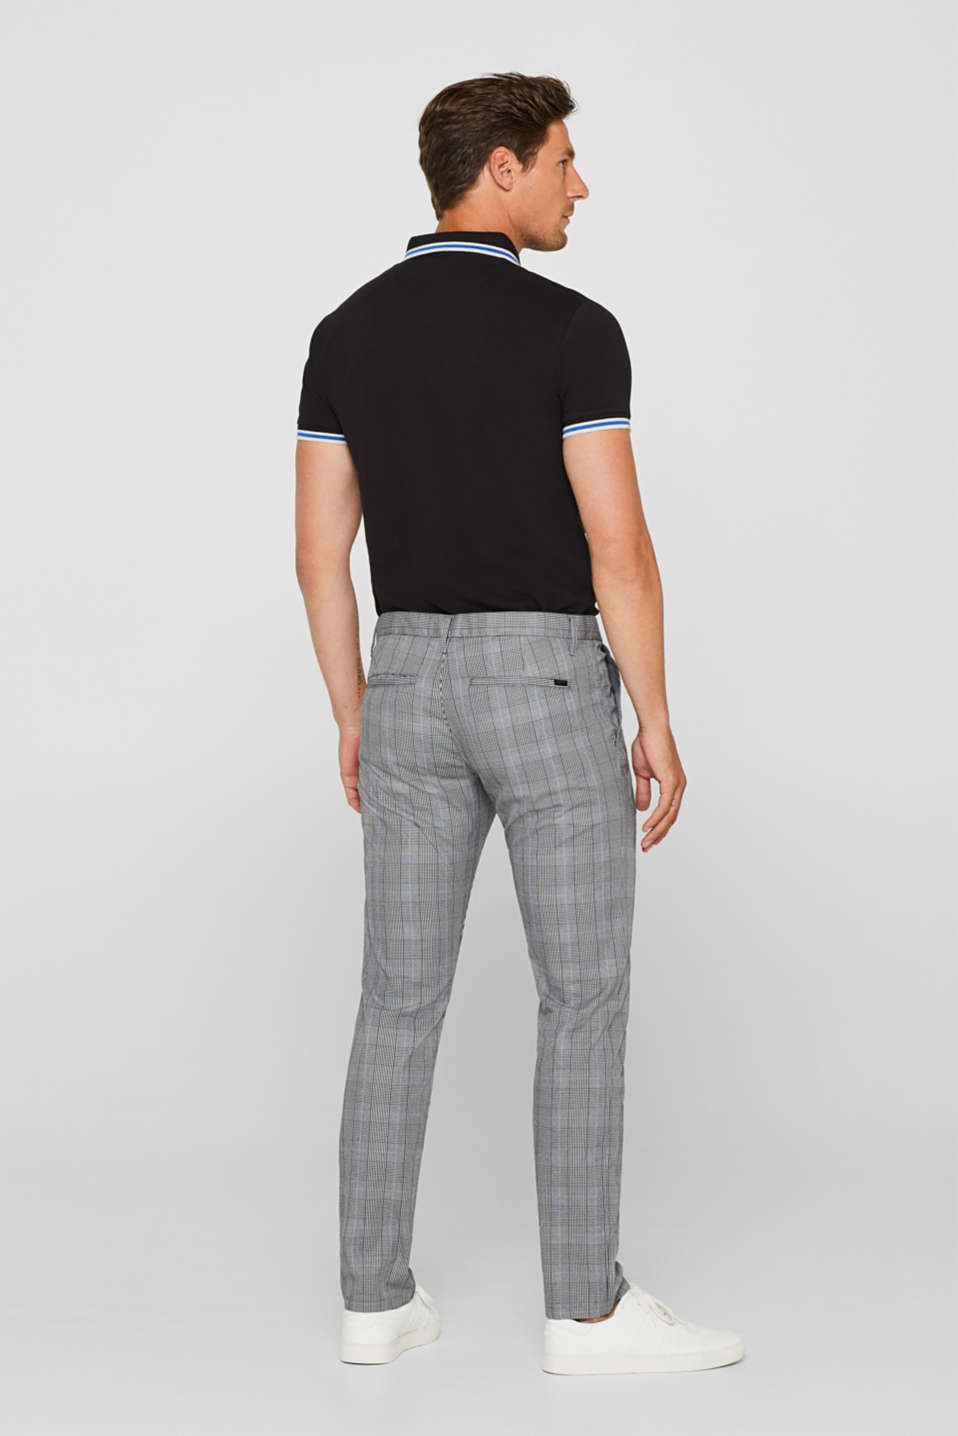 Trousers with a check pattern, made of stretch cotton, ANTHRACITE, detail image number 3